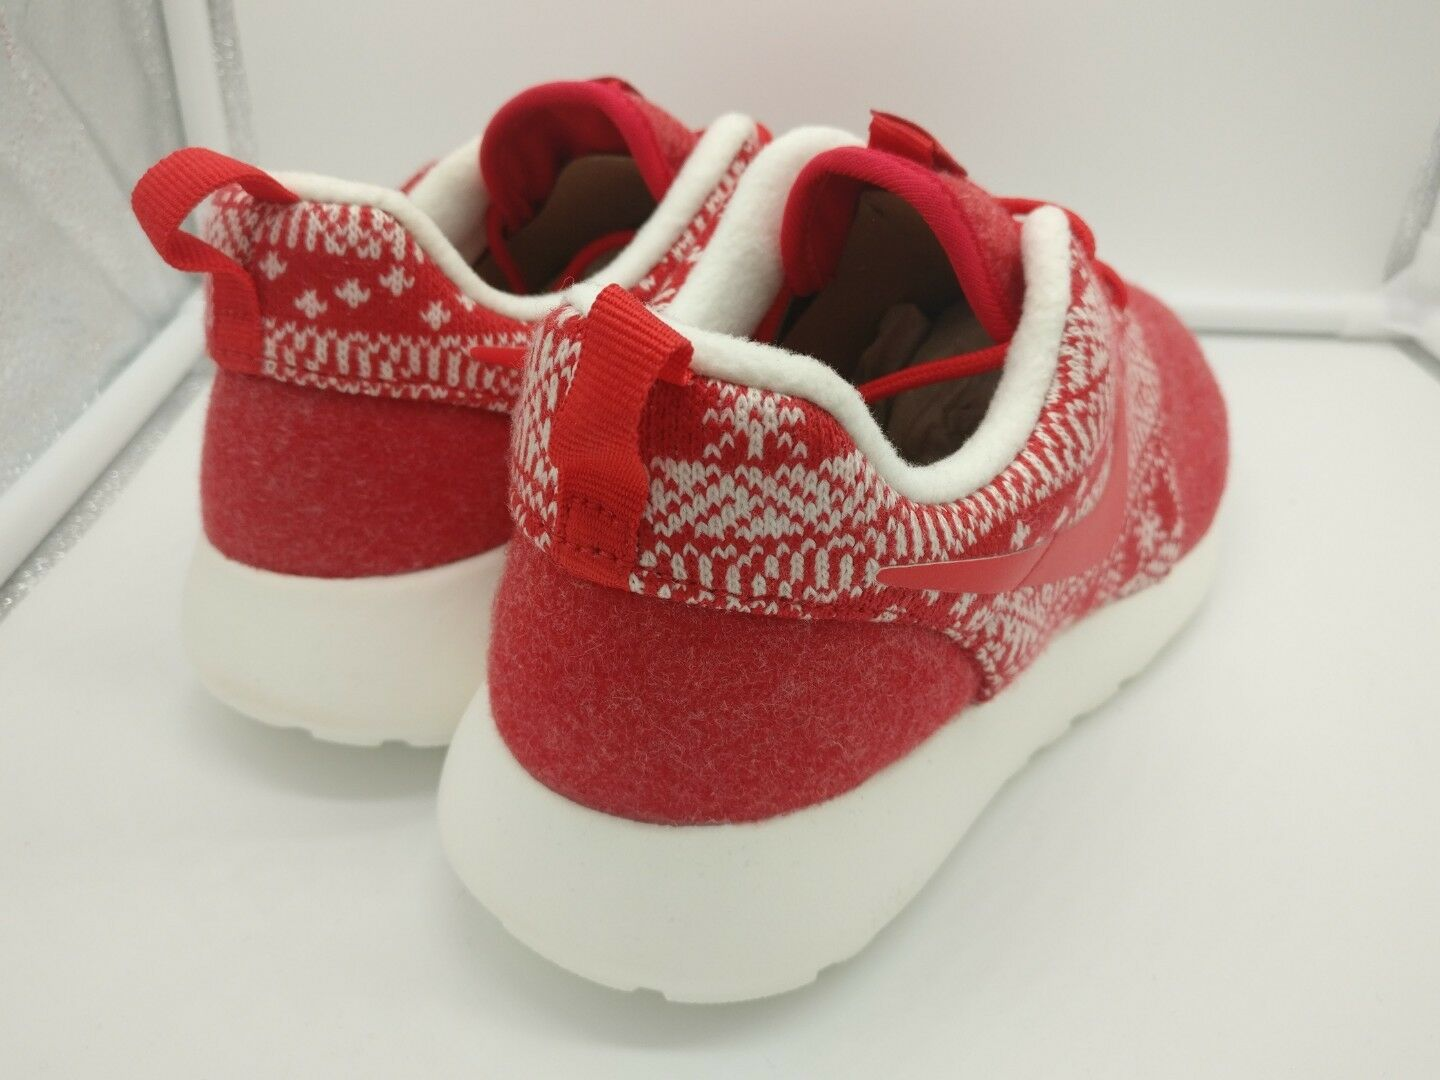 Nike 6.5 Damenschuhe Roshe One Winter UK 6.5 Nike University ROT Sail 685286661 2d486d